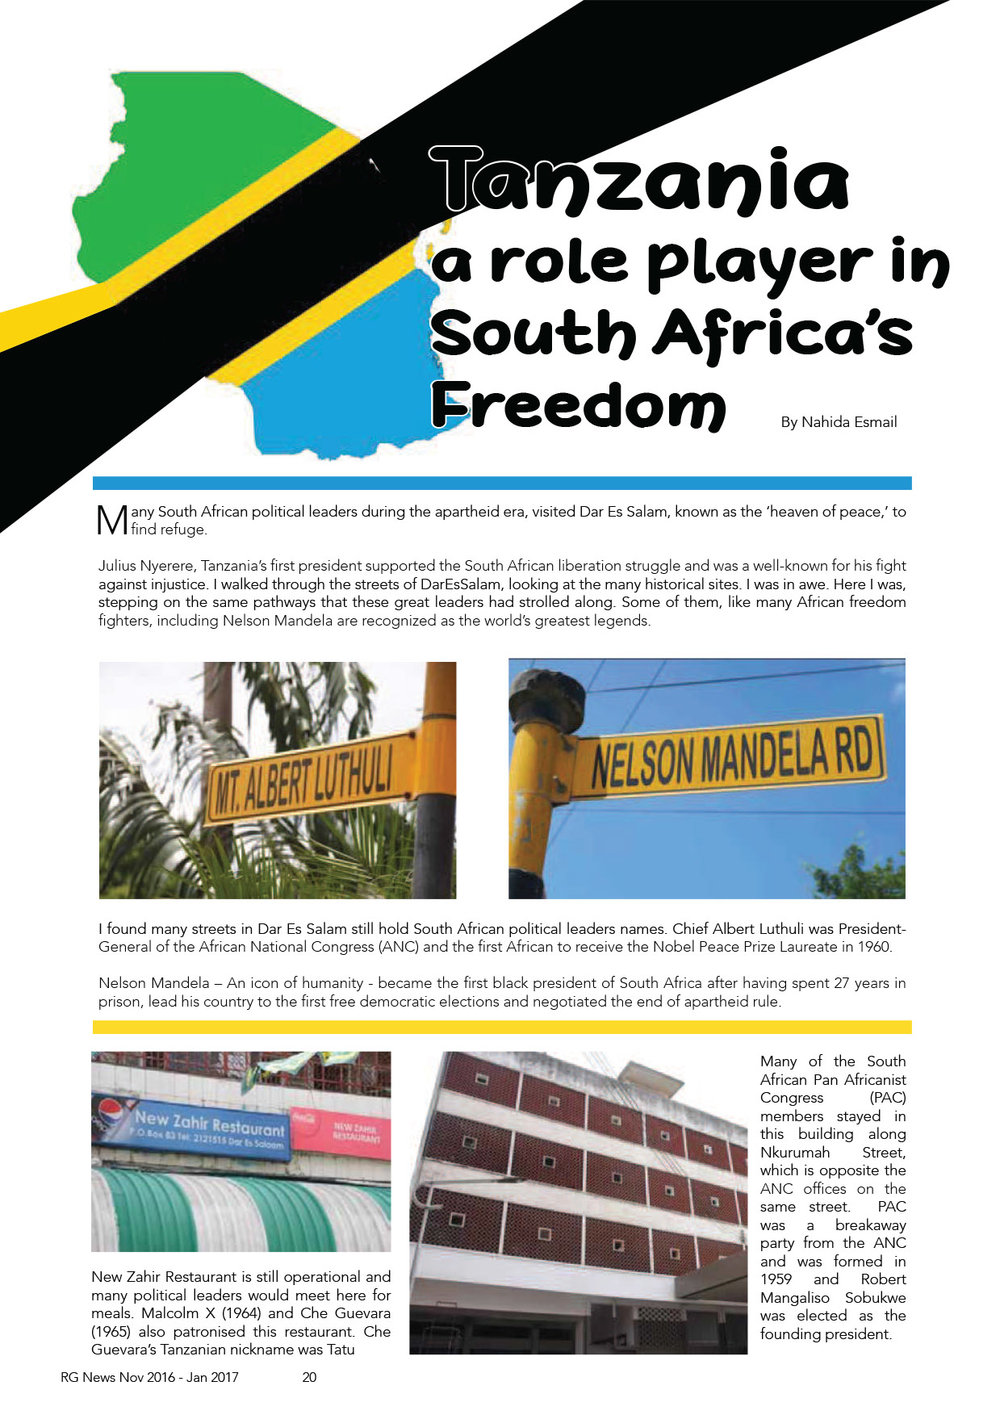 First appeared in Roshgold News  www.roshgold.co.za